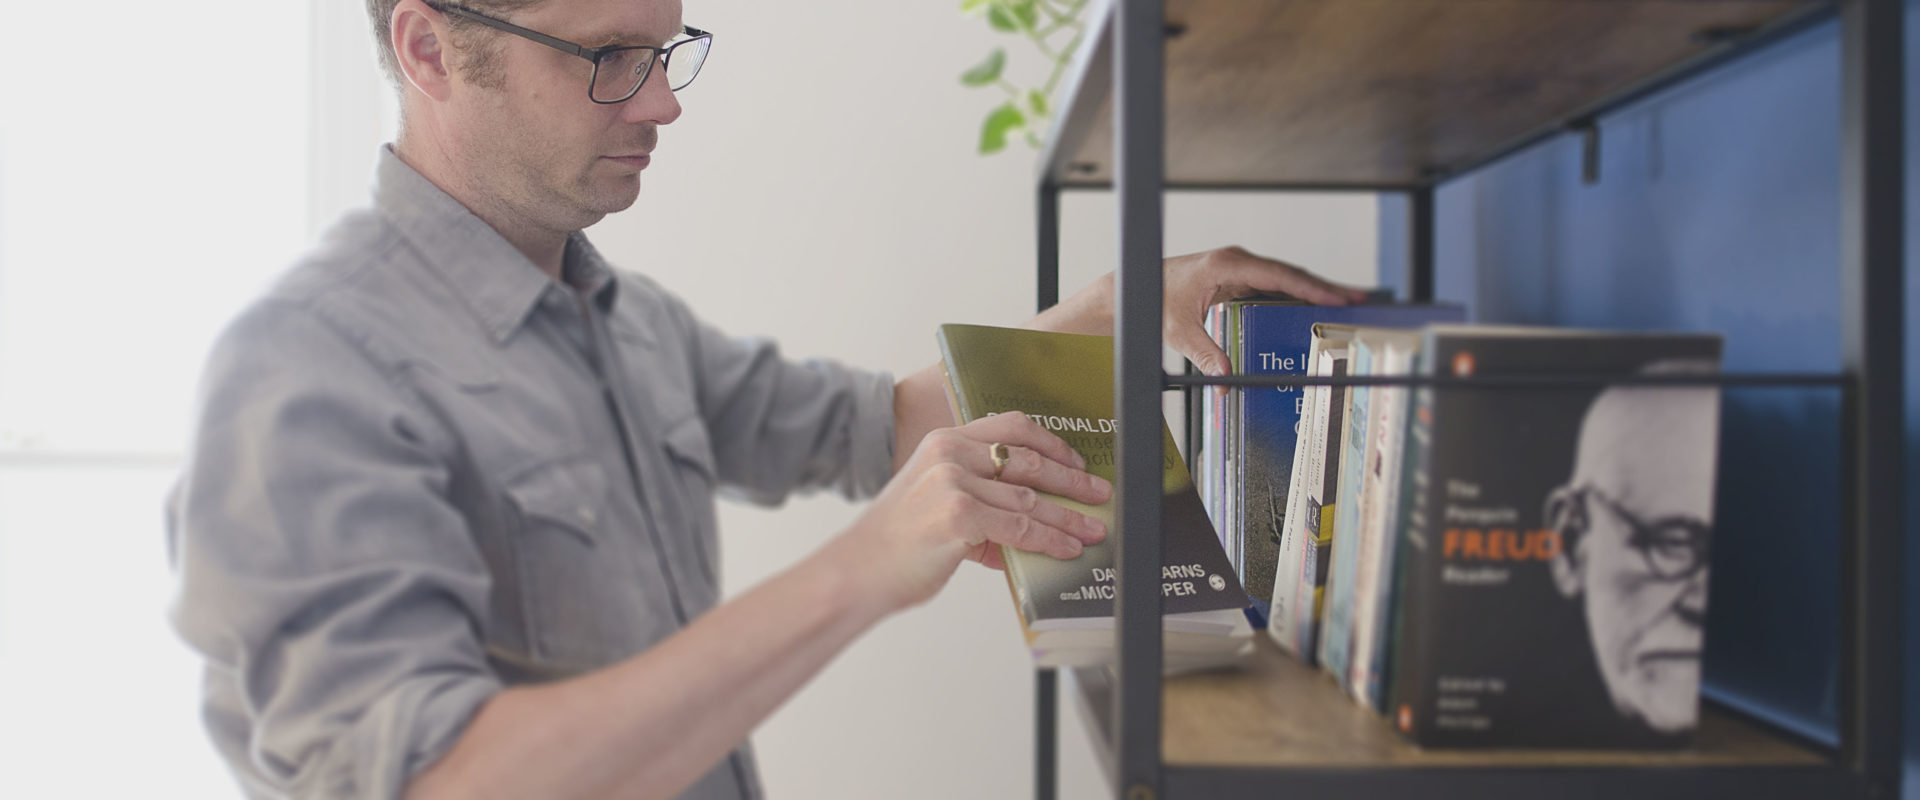 David Wigglesworth organising books on shelf